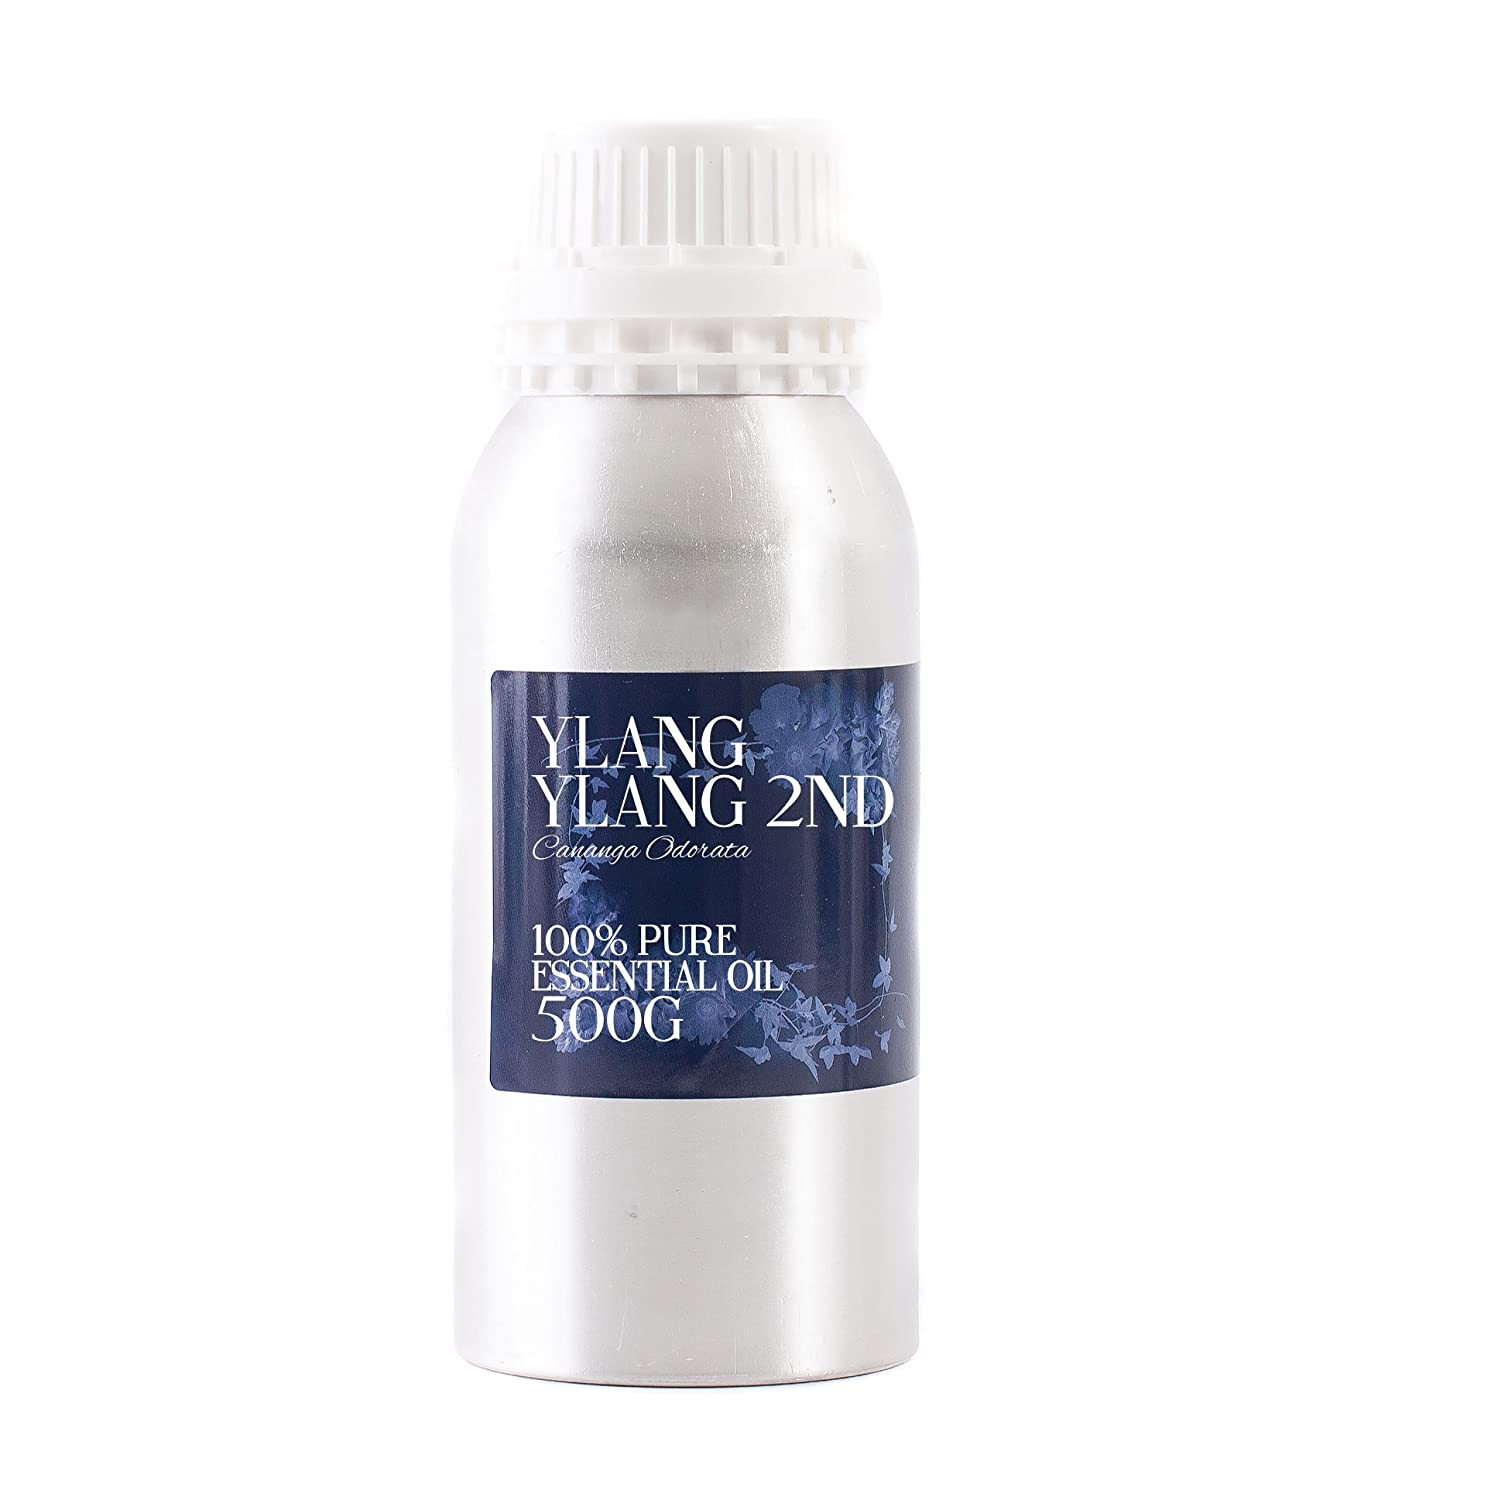 Mystic Moments | Ylang Ylang 2nd Essential Oil - 500g - 100% Pure B01MCQCOTY